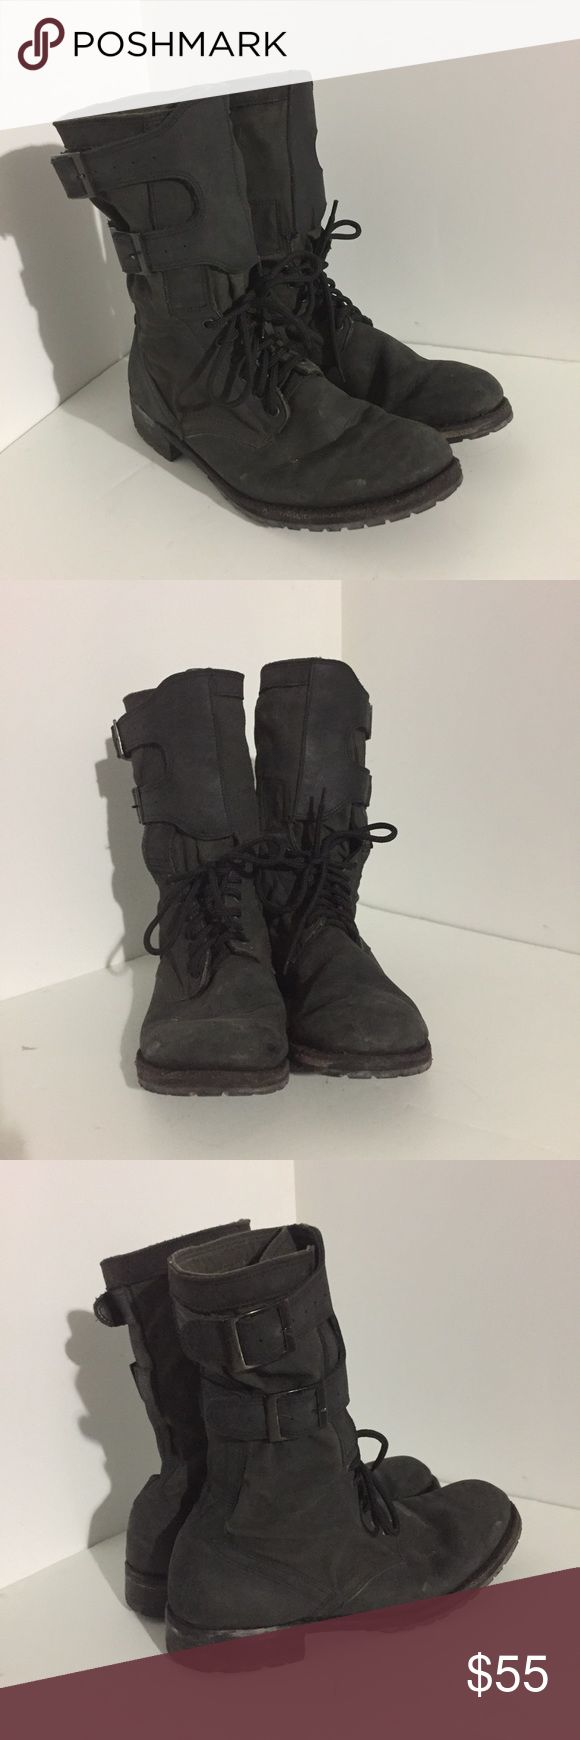 """Divergent Stunt Boots Worn for stunts in the movie Insurgent of the Divergent movie series. Made to look worn (movie Modified). They say """"Pollux Stunt"""" on the inside in permanent marker. They look black in the pics, but the canvas part is actually a military green. No size listed, but they appear to be a men's 10. Shoes Boots"""